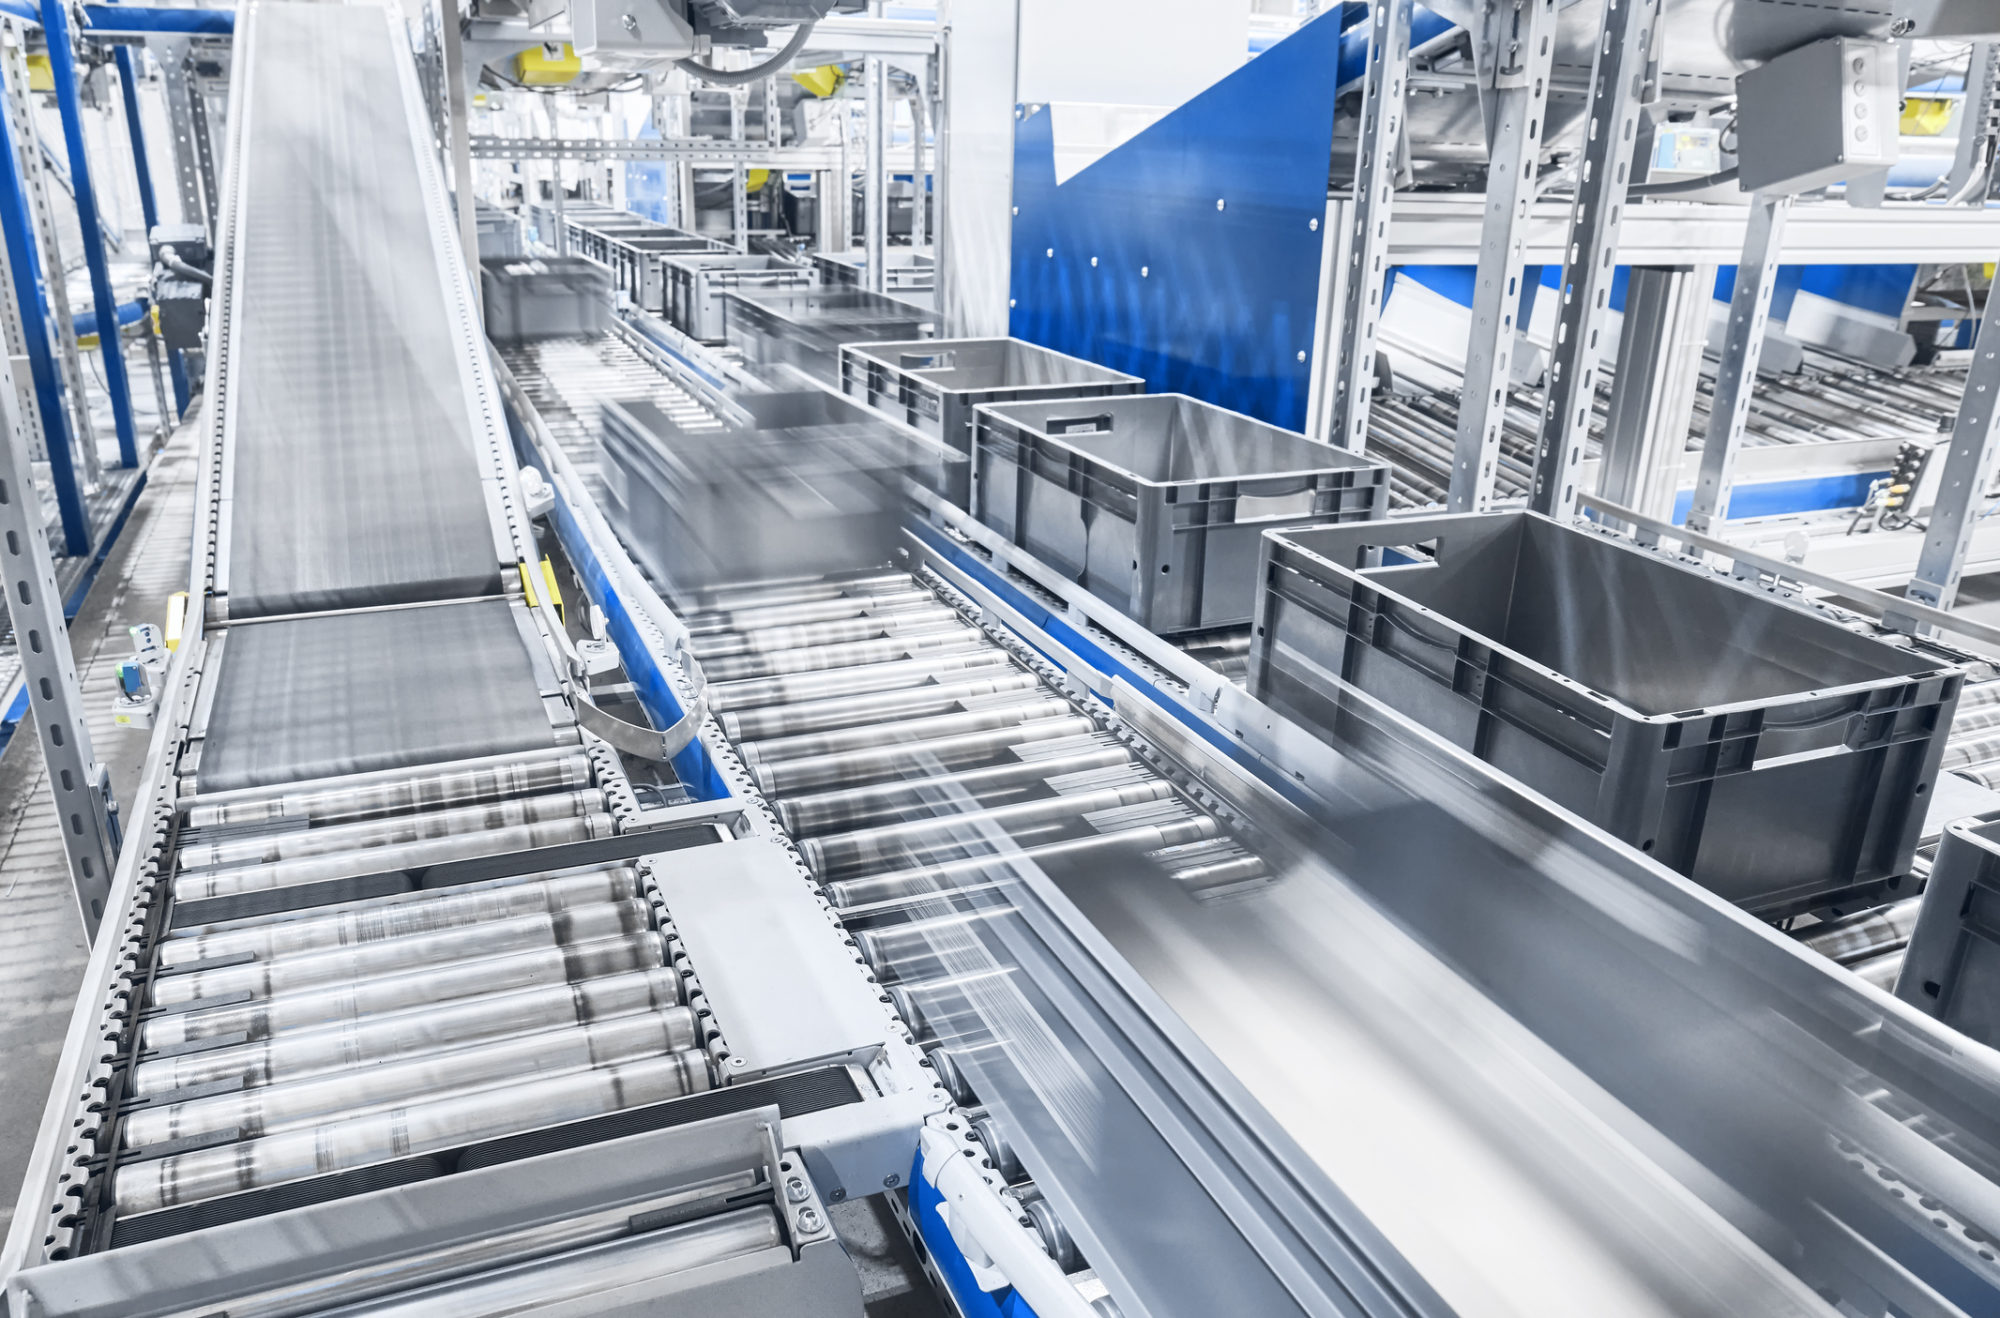 Modern conveyor system with boxes in motion